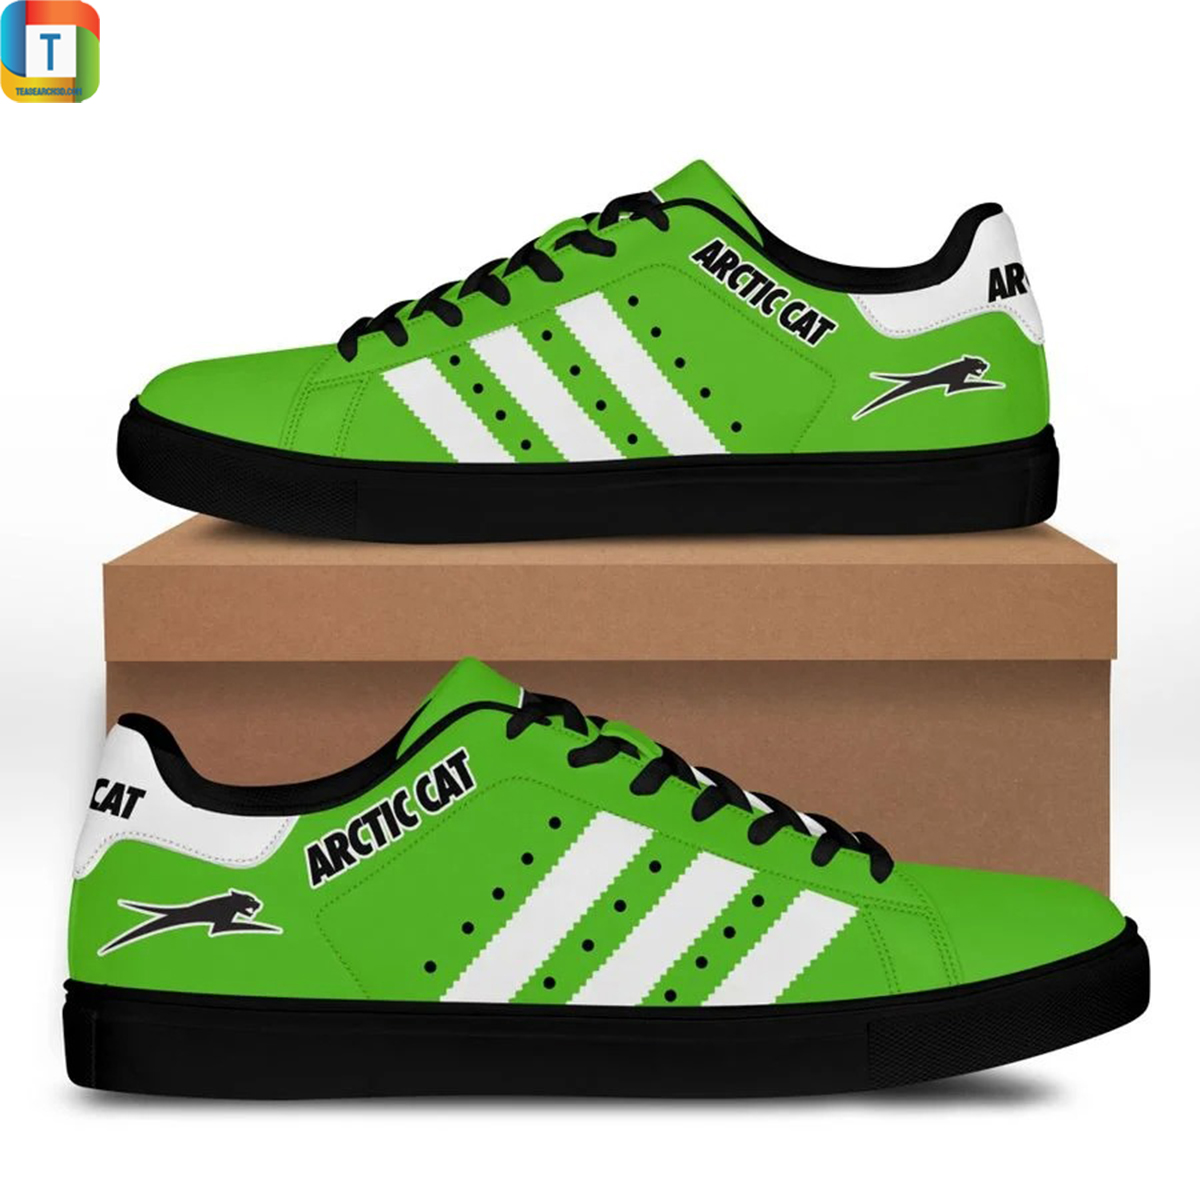 Arctic cat stan smith low top shoes